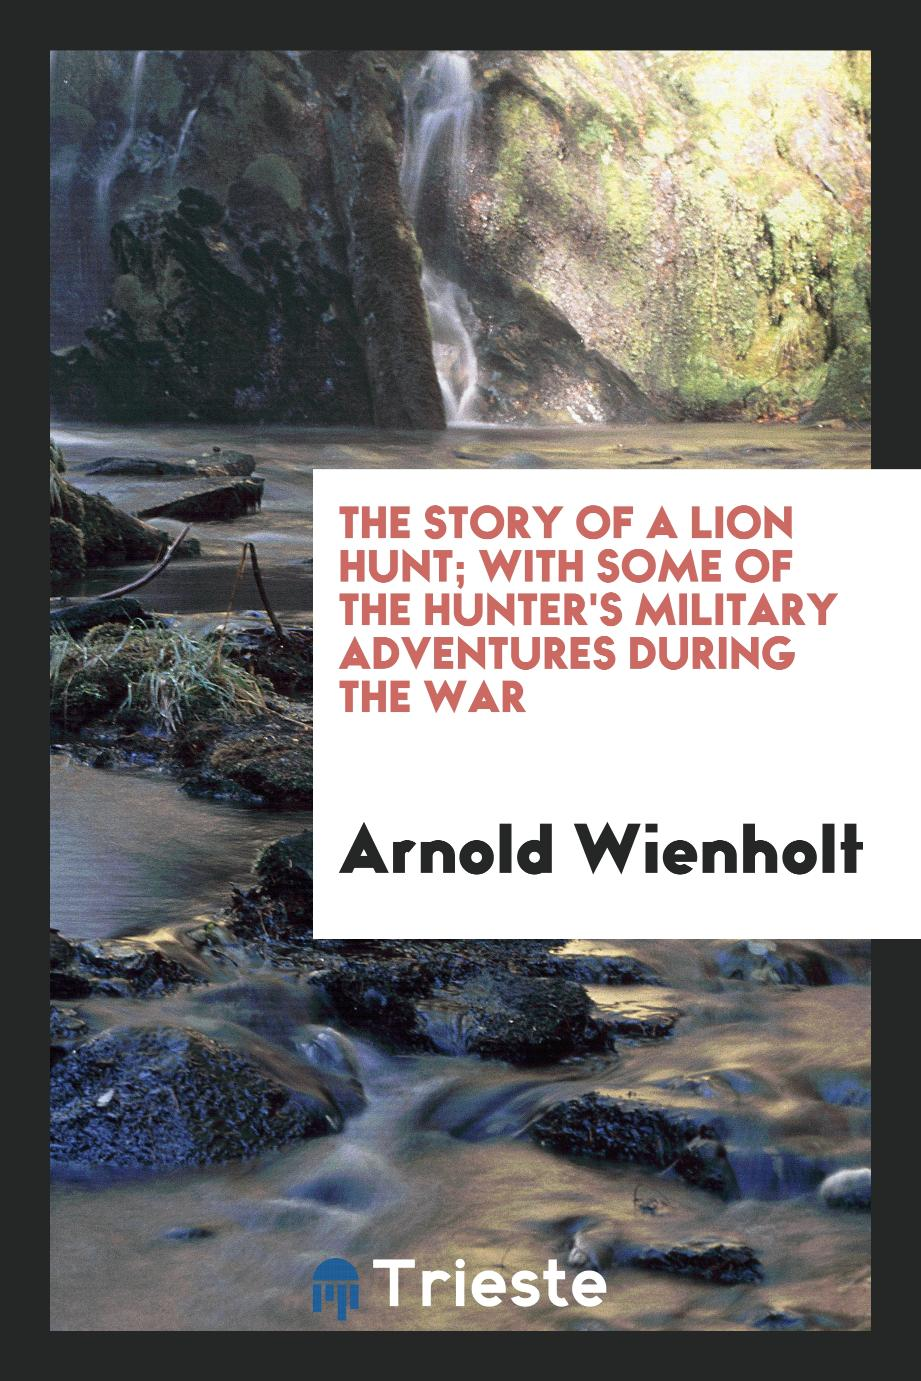 The story of a lion hunt; with some of the hunter's military adventures during the war